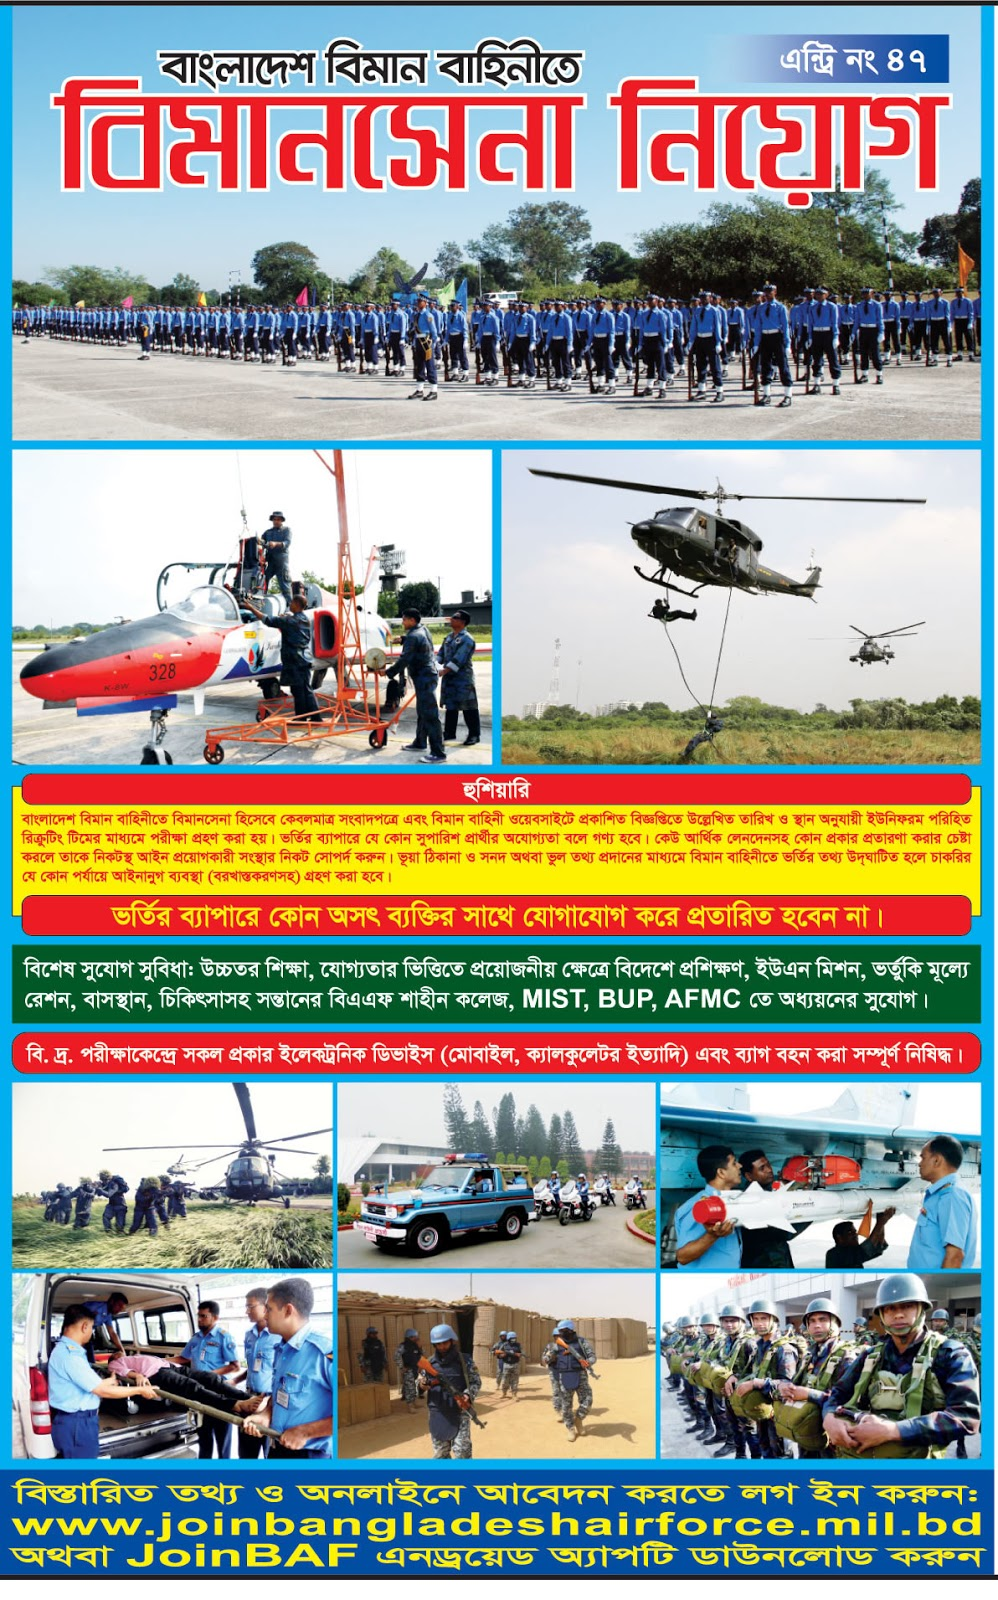 Bangladesh Air Force Airman Recruitment Circular 2018